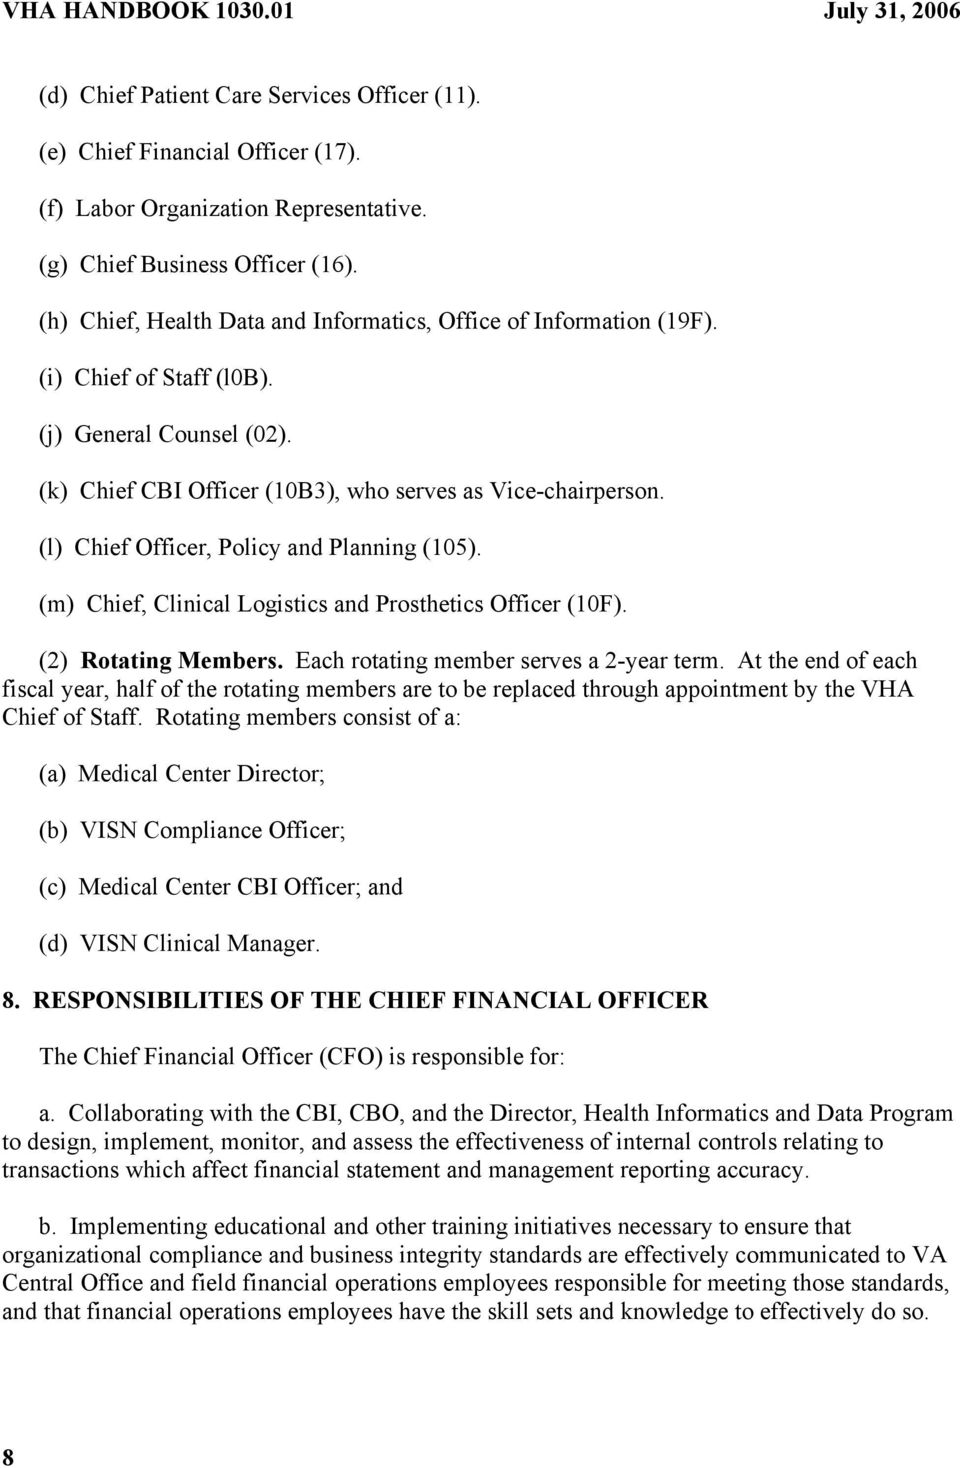 (l) Chief Officer, Policy and Planning (105). (m) Chief, Clinical Logistics and Prosthetics Officer (10F). (2) Rotating Members. Each rotating member serves a 2-year term.